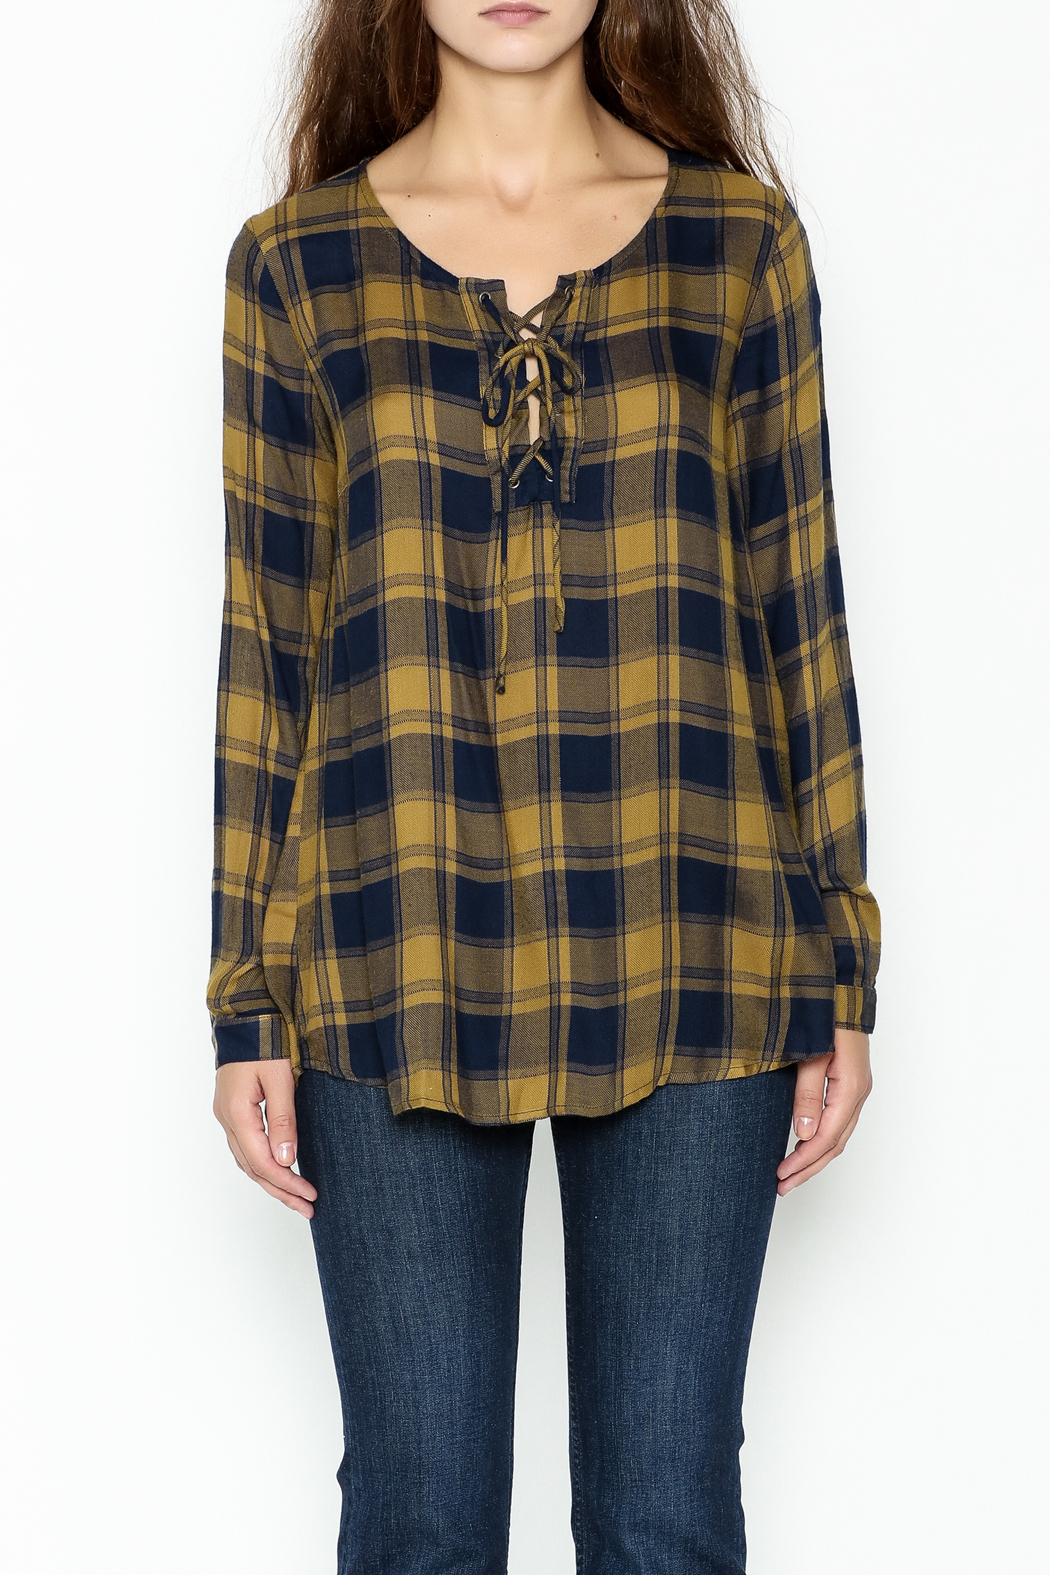 Mystree Lace Up Plaid Top - Front Full Image